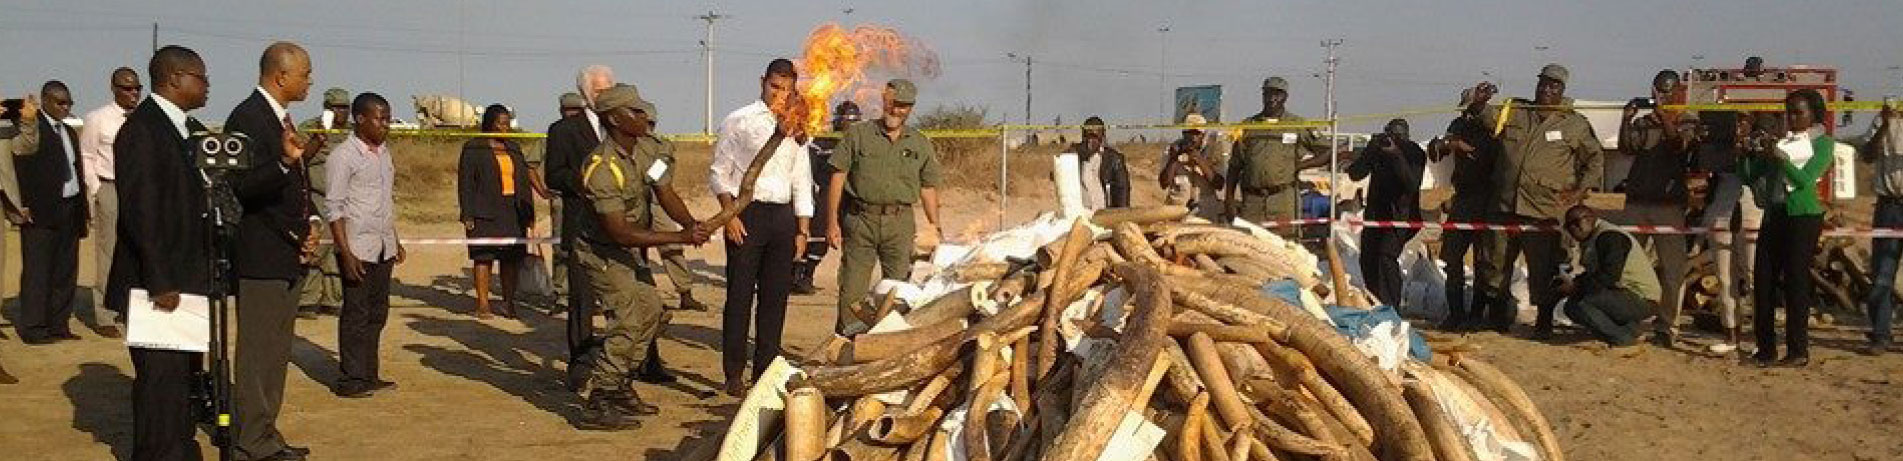 Mozambique officials burn a pile of seized ivory and rhino horns